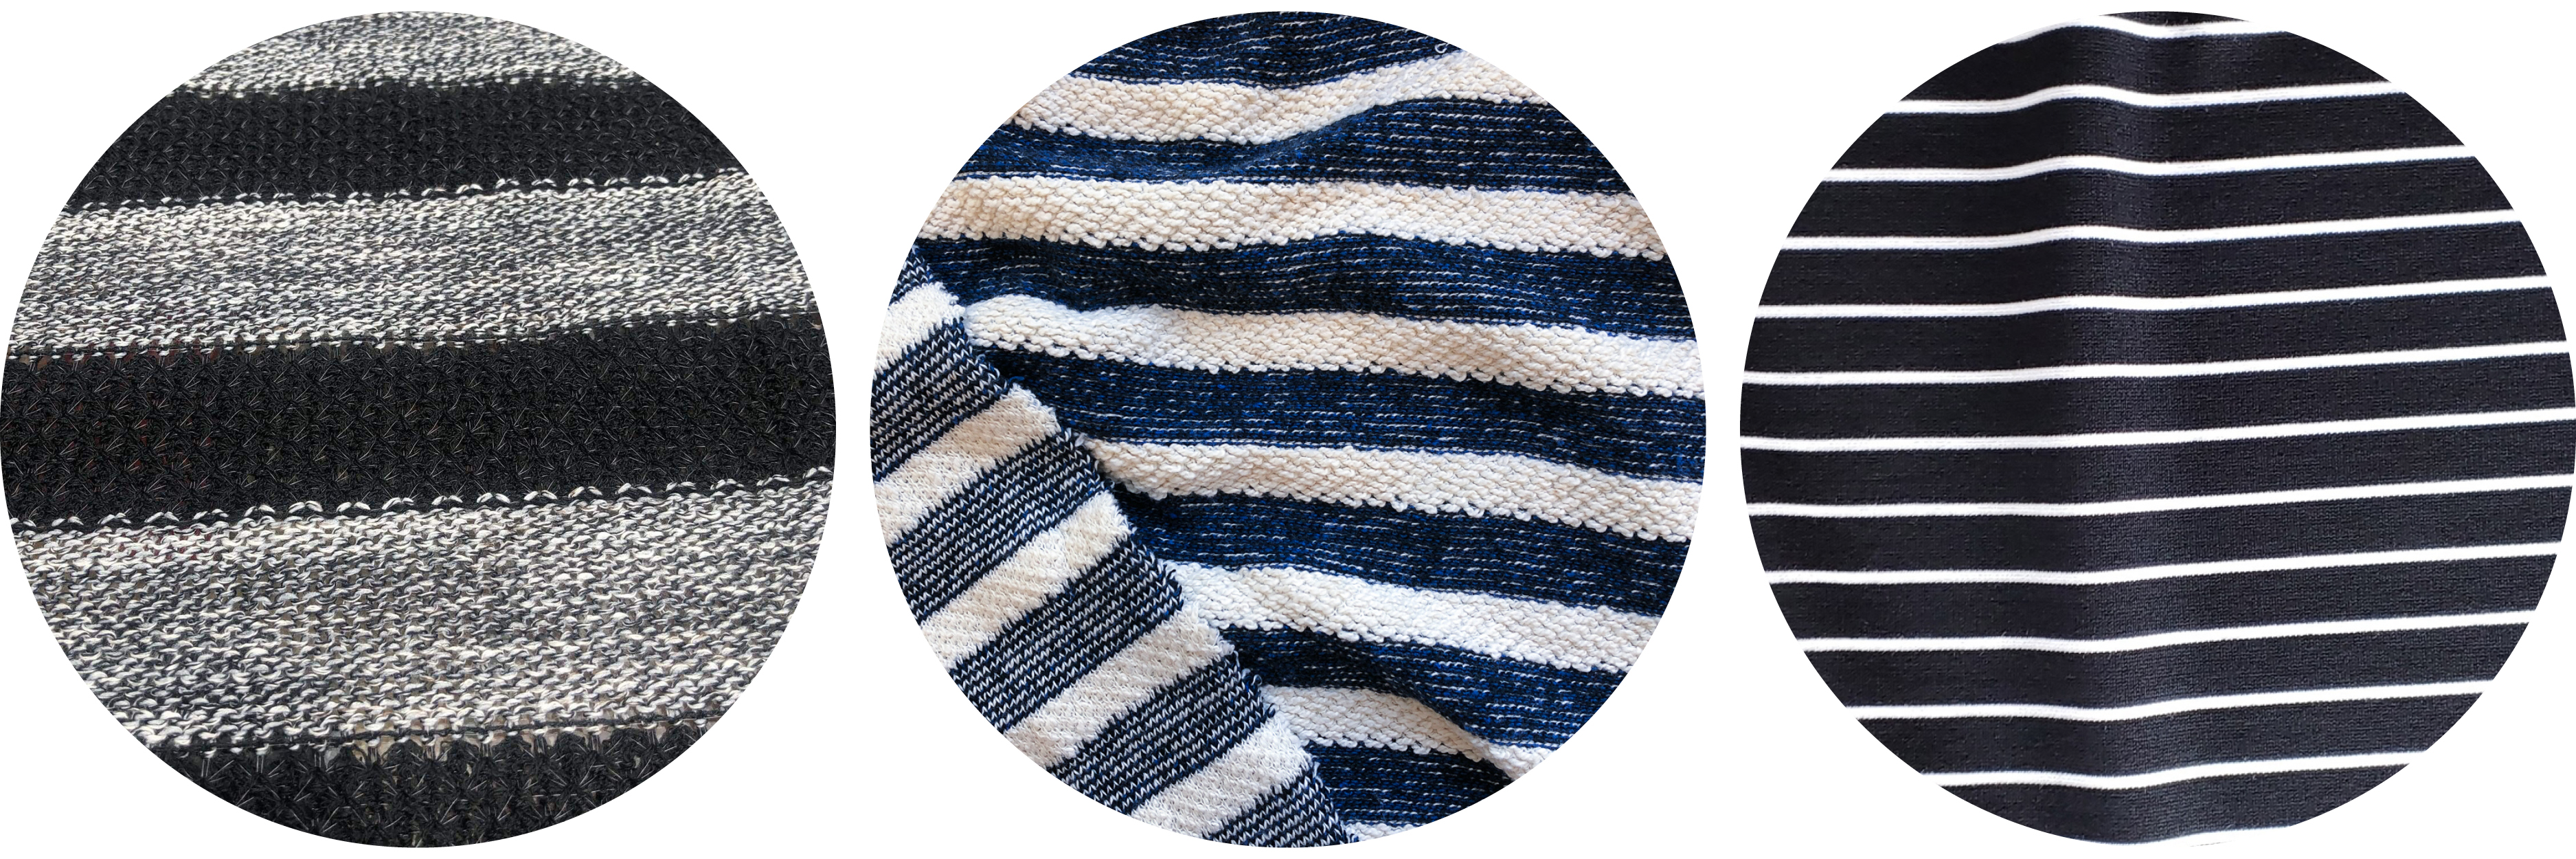 Tobin Sweater knit fabric ideas: stripes